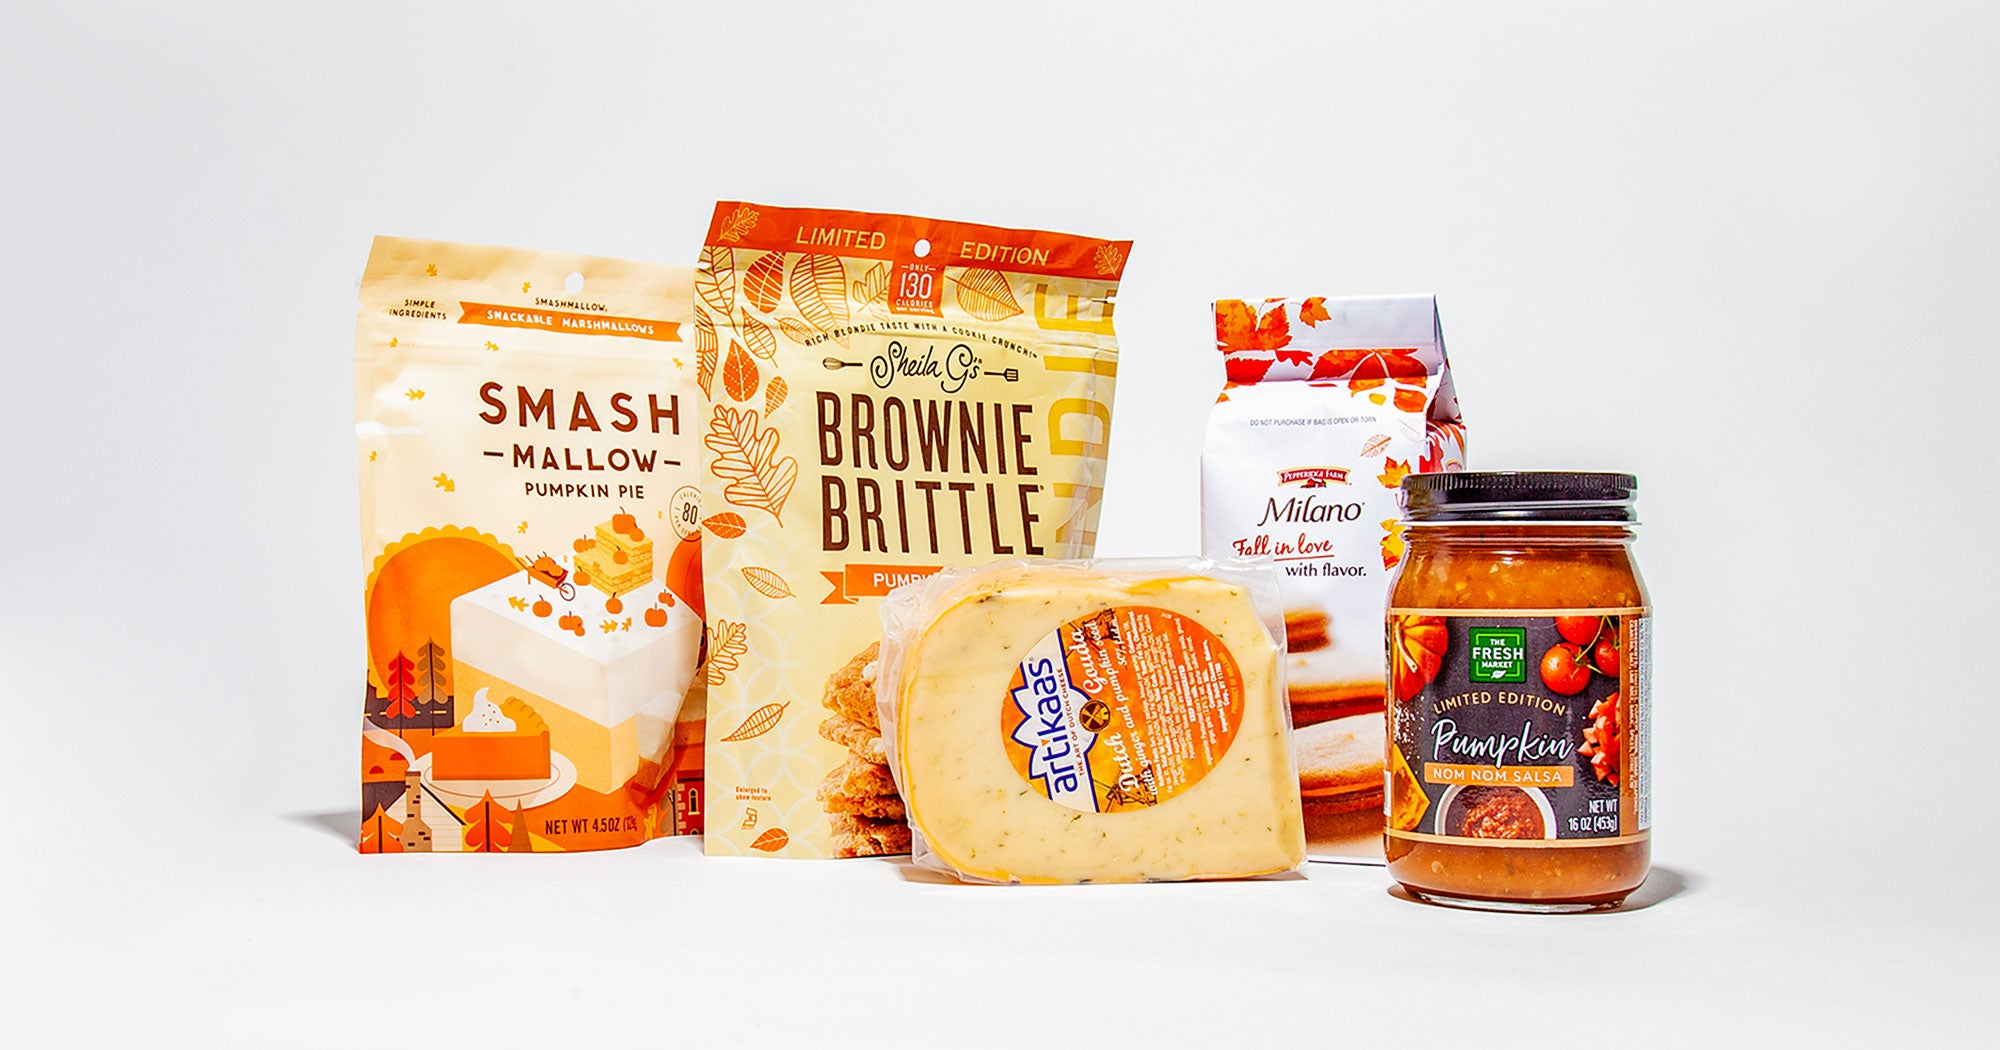 We Tried (Almost) All The Pumpkin Spice Foods & Here Are Our Honest Opinions